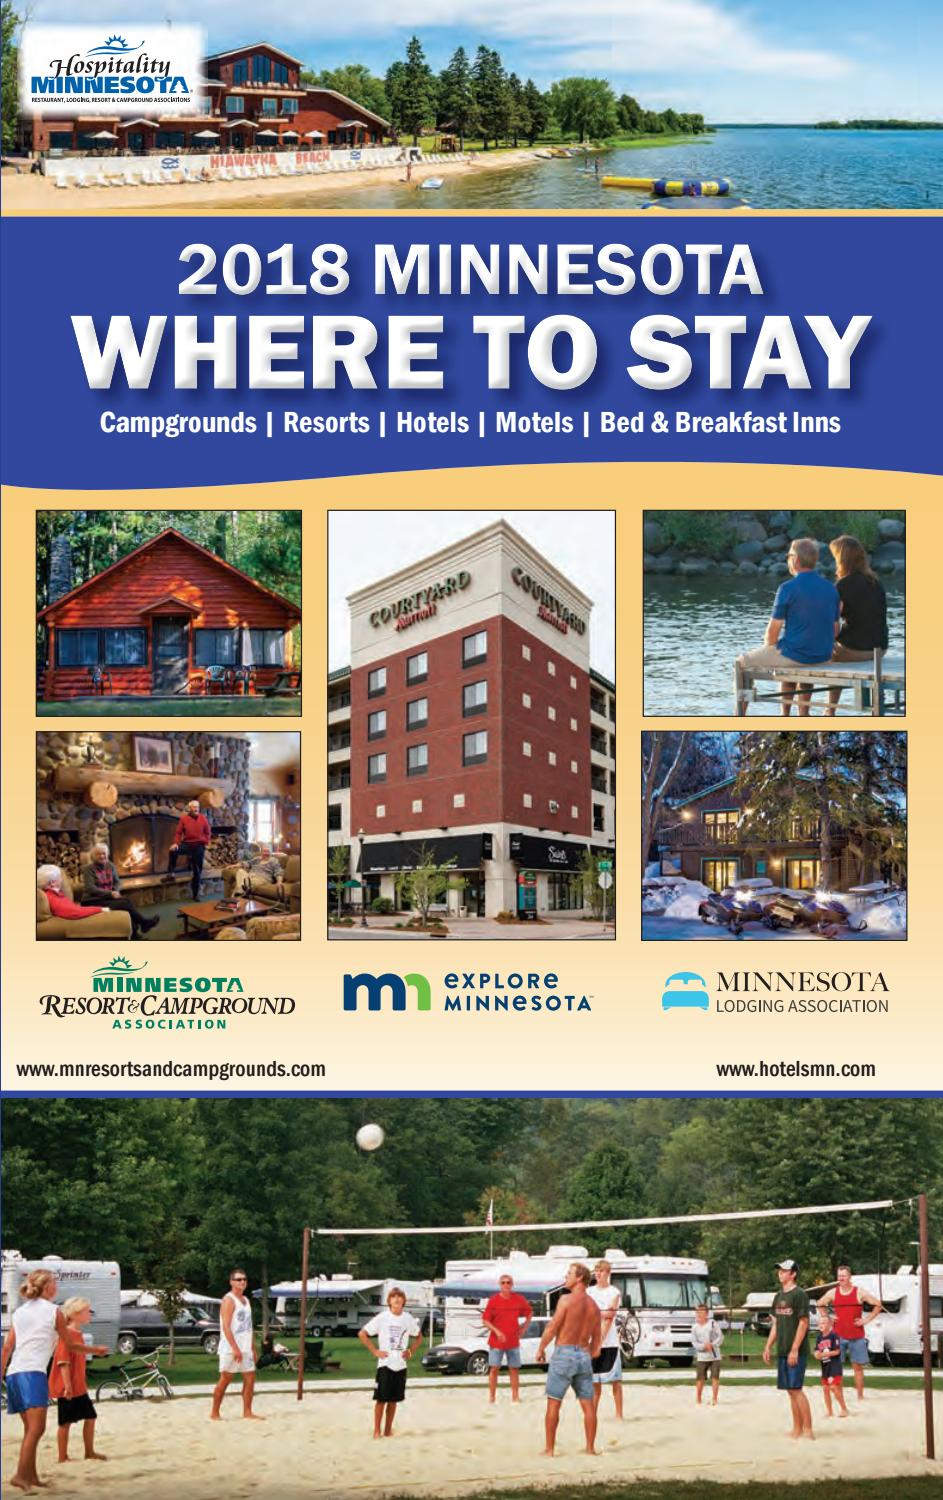 Pleasant 2018 Minnesota Where To Stay Travel Guide By The Manager Issuu Download Free Architecture Designs Scobabritishbridgeorg